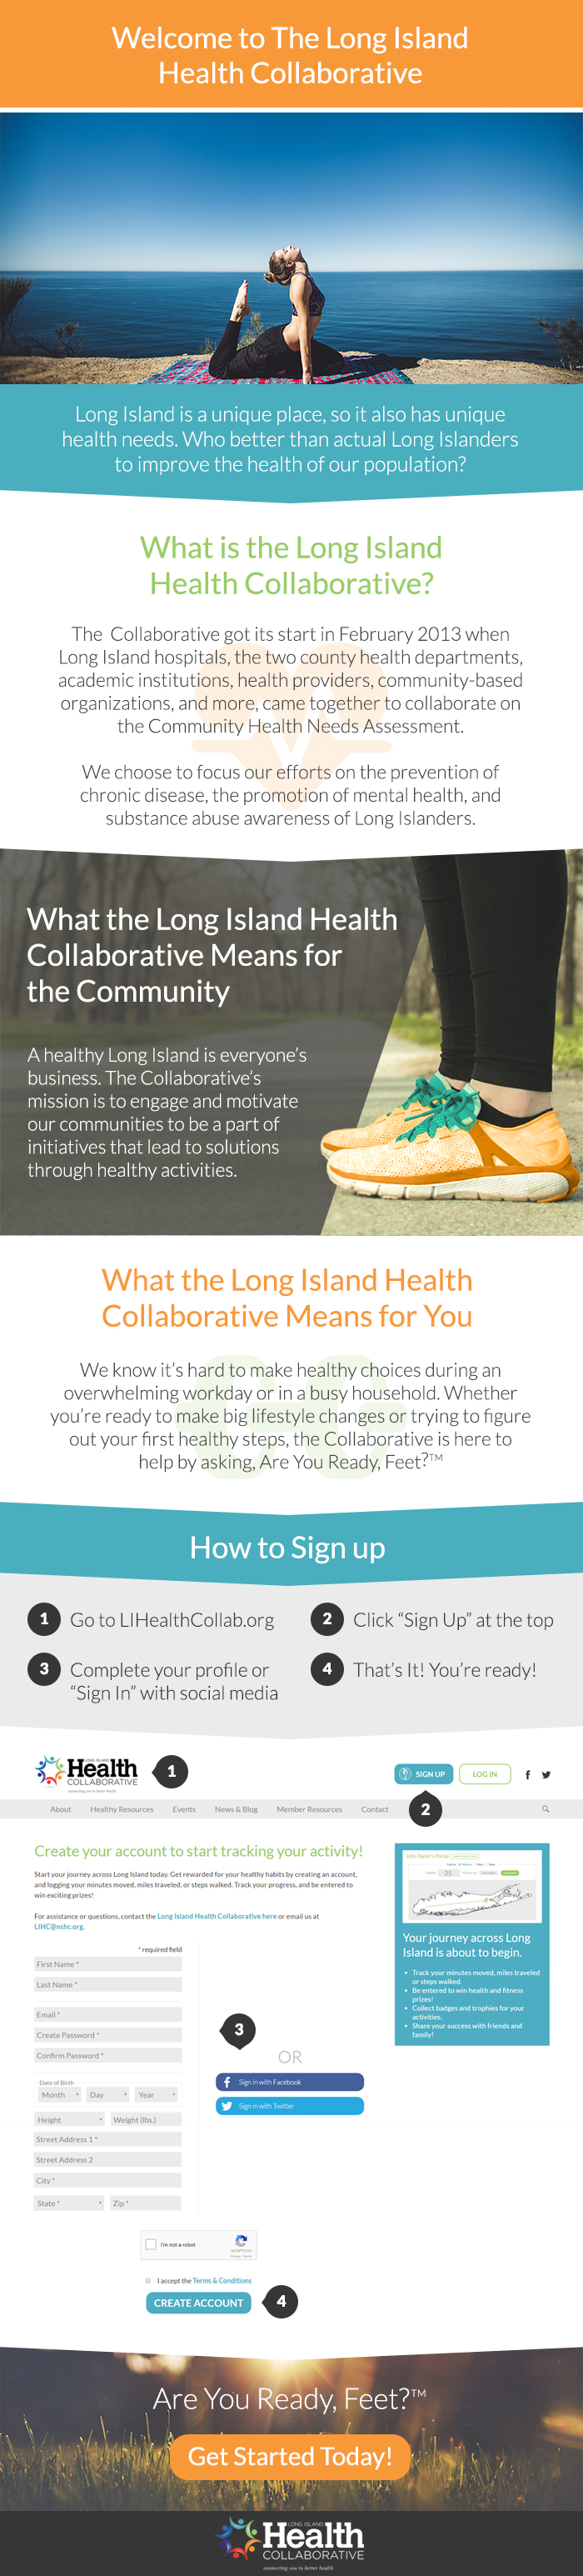 Welcome to the Long Island Health Collaborative